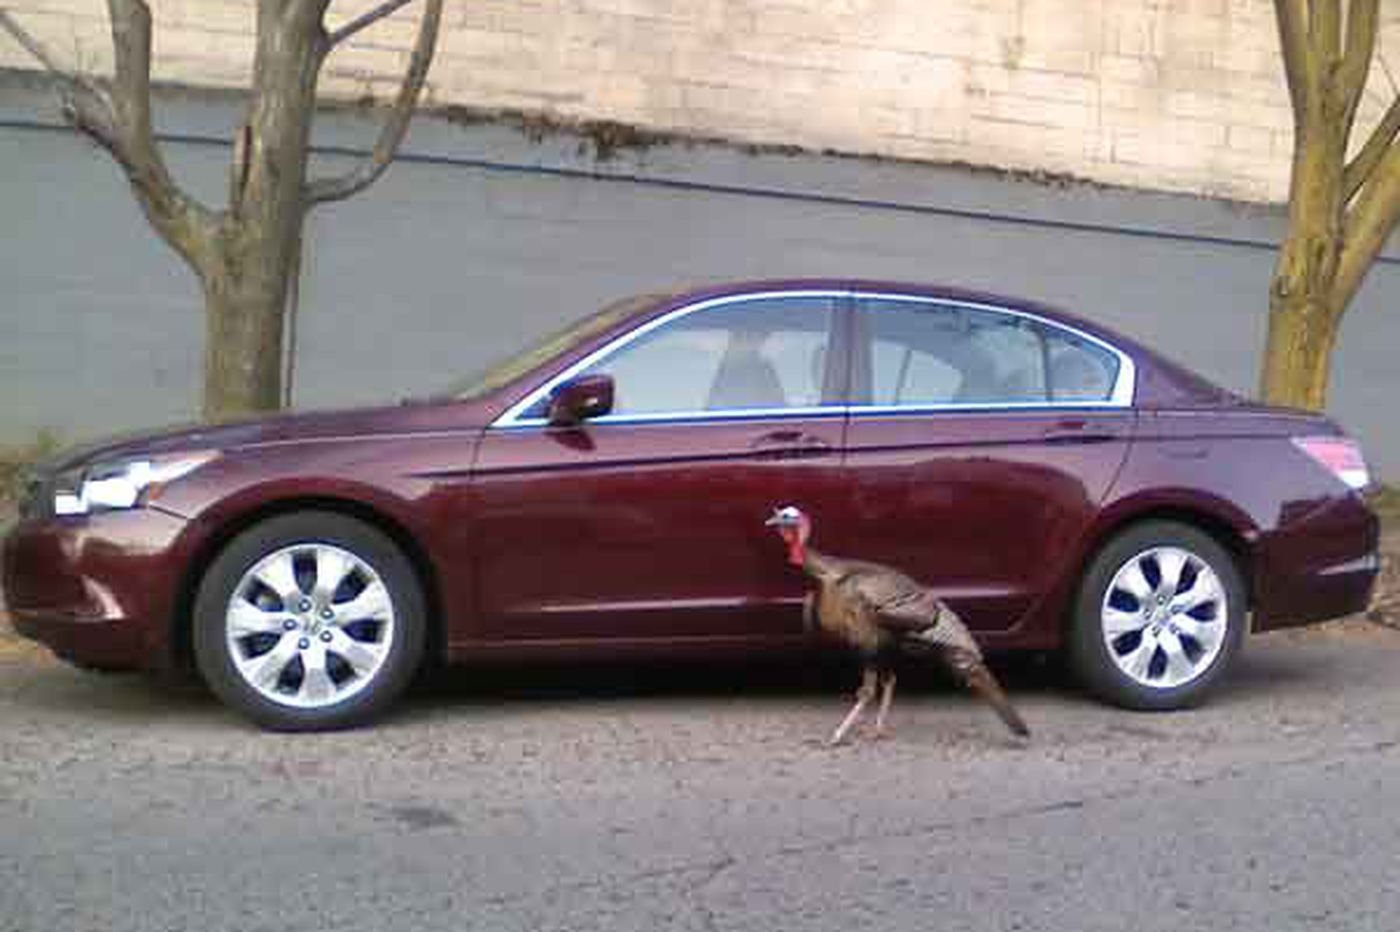 Call of the Wild Turkey of West Philly